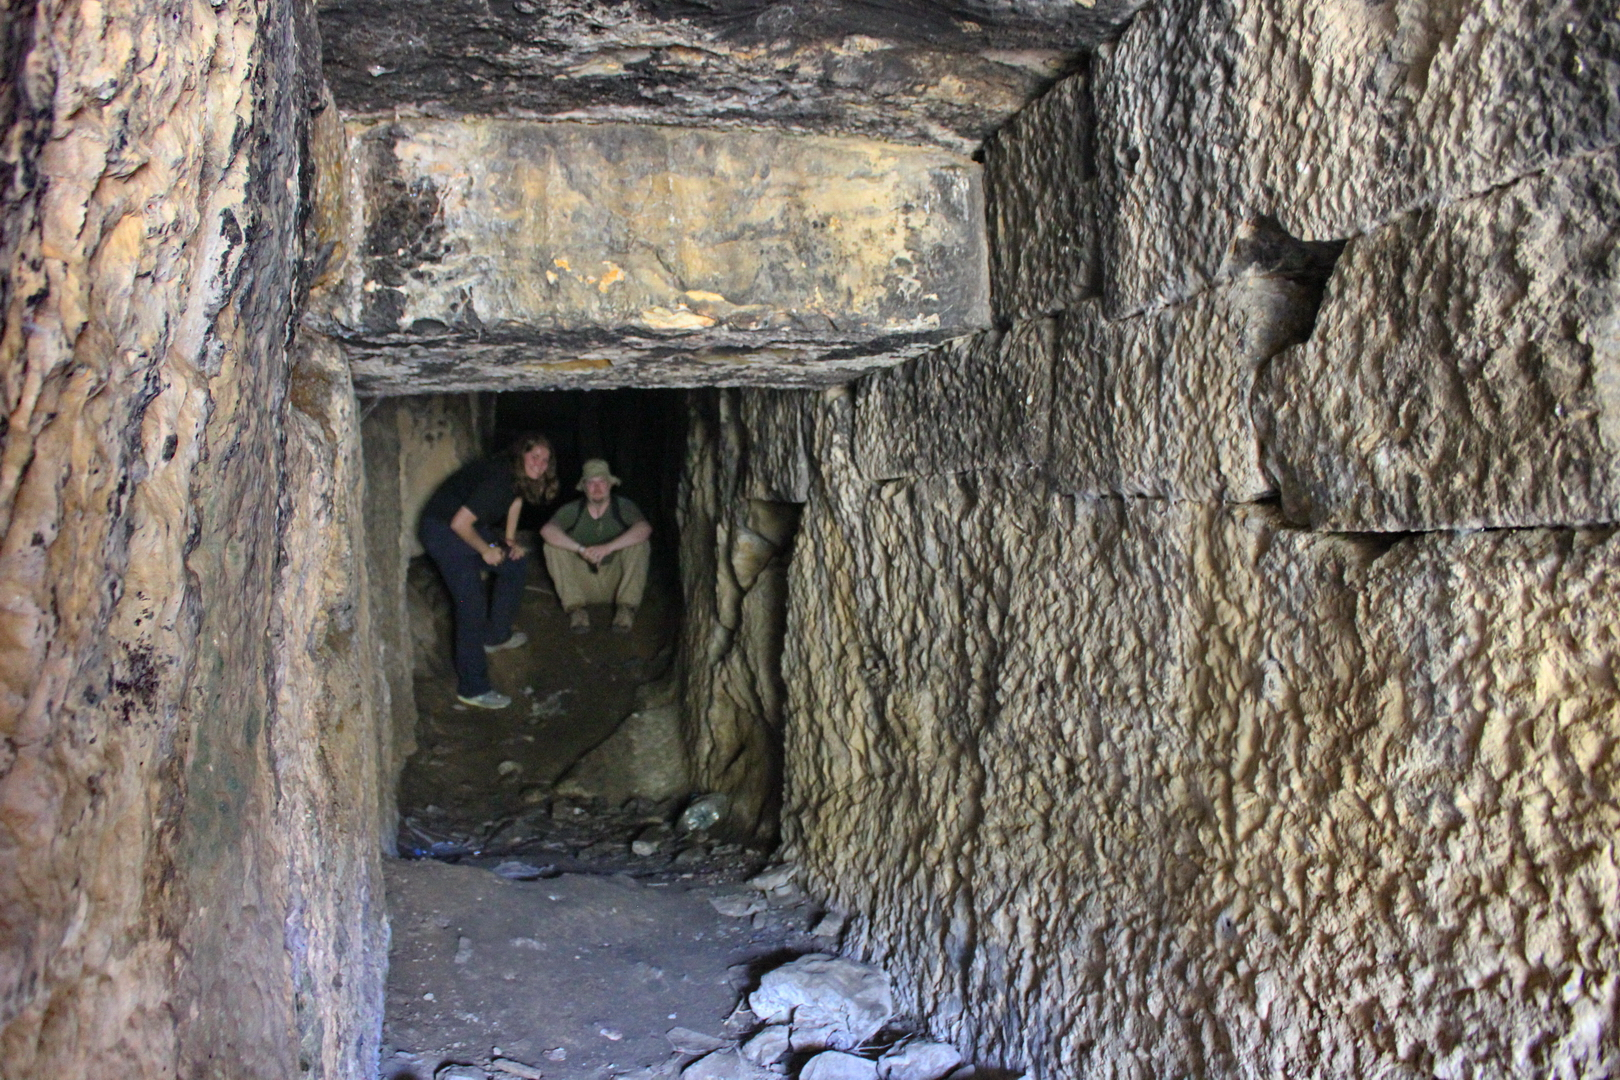 Entrance passage to Belevi Tumulus (photo © Daniel C Browning Jr)